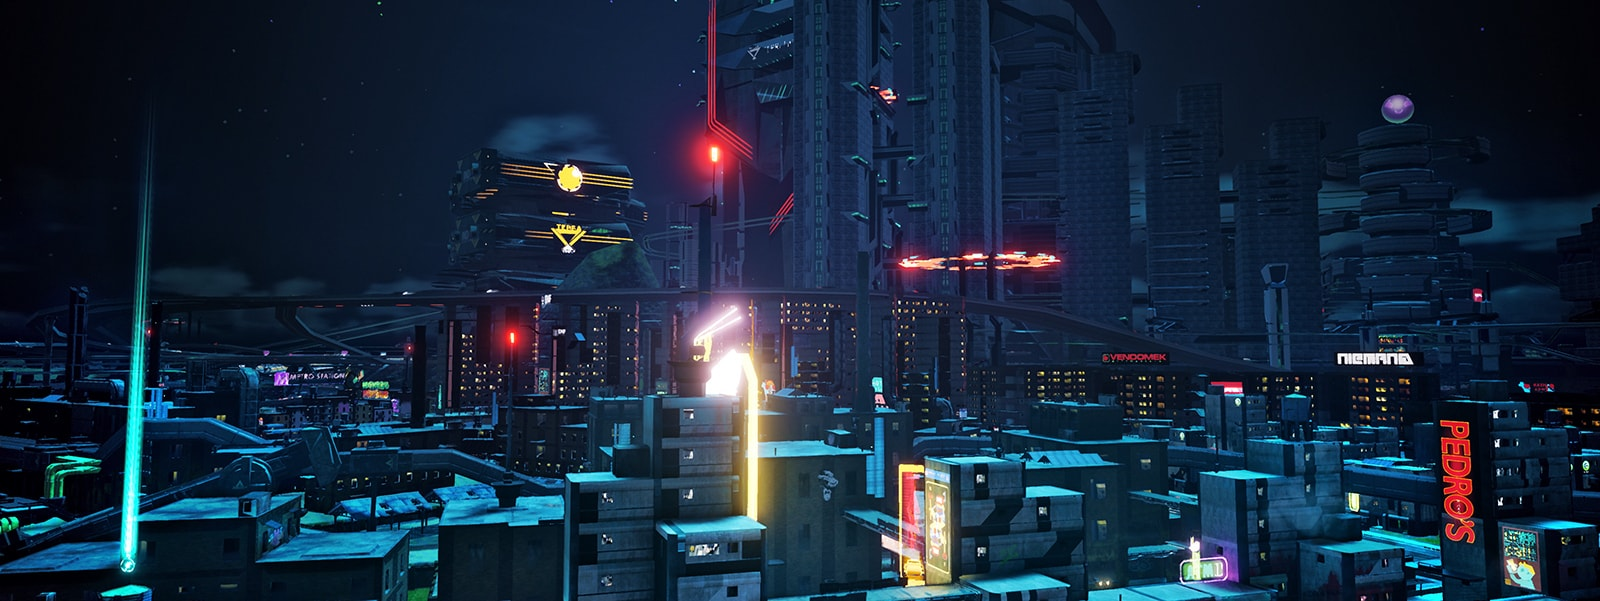 Captura de pantalla de Crackdown 3 con HDR